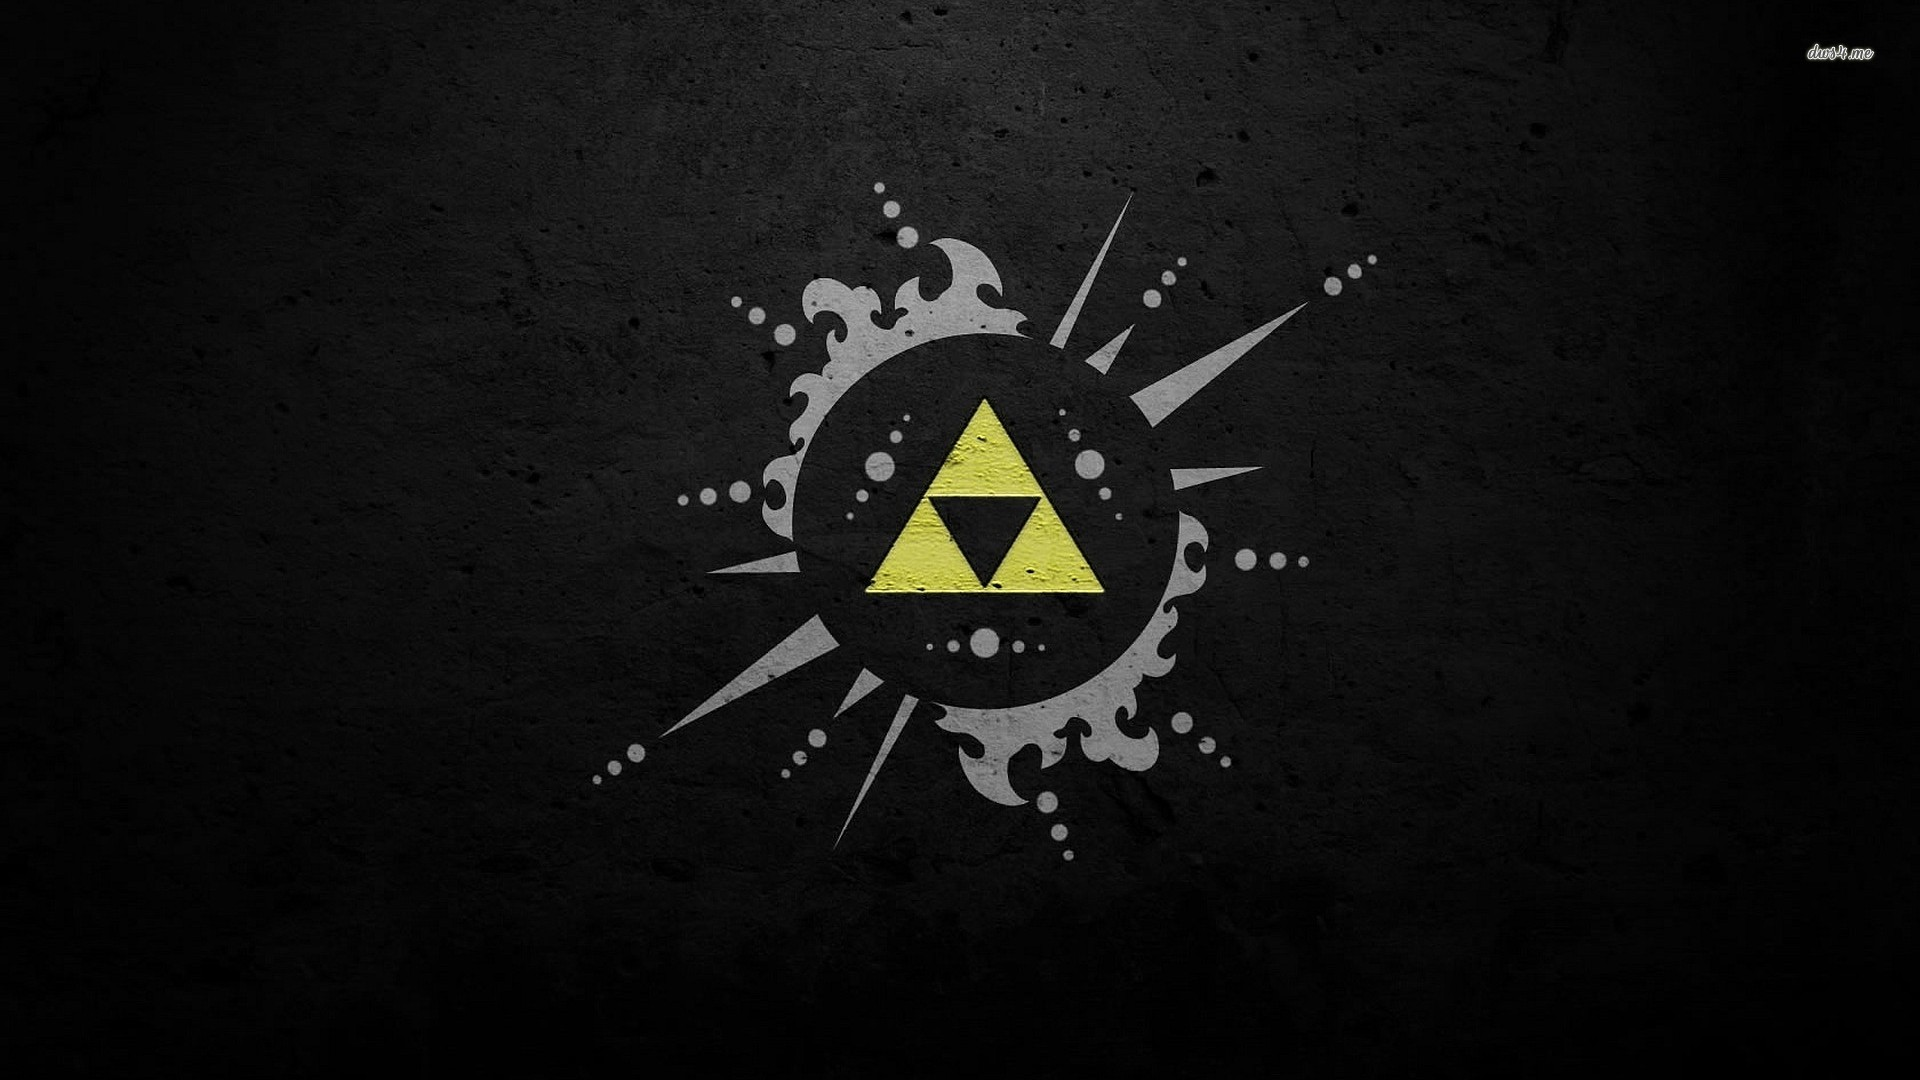 Zelda Wallpaper 19201080 Zelda wallpape 1920x1080